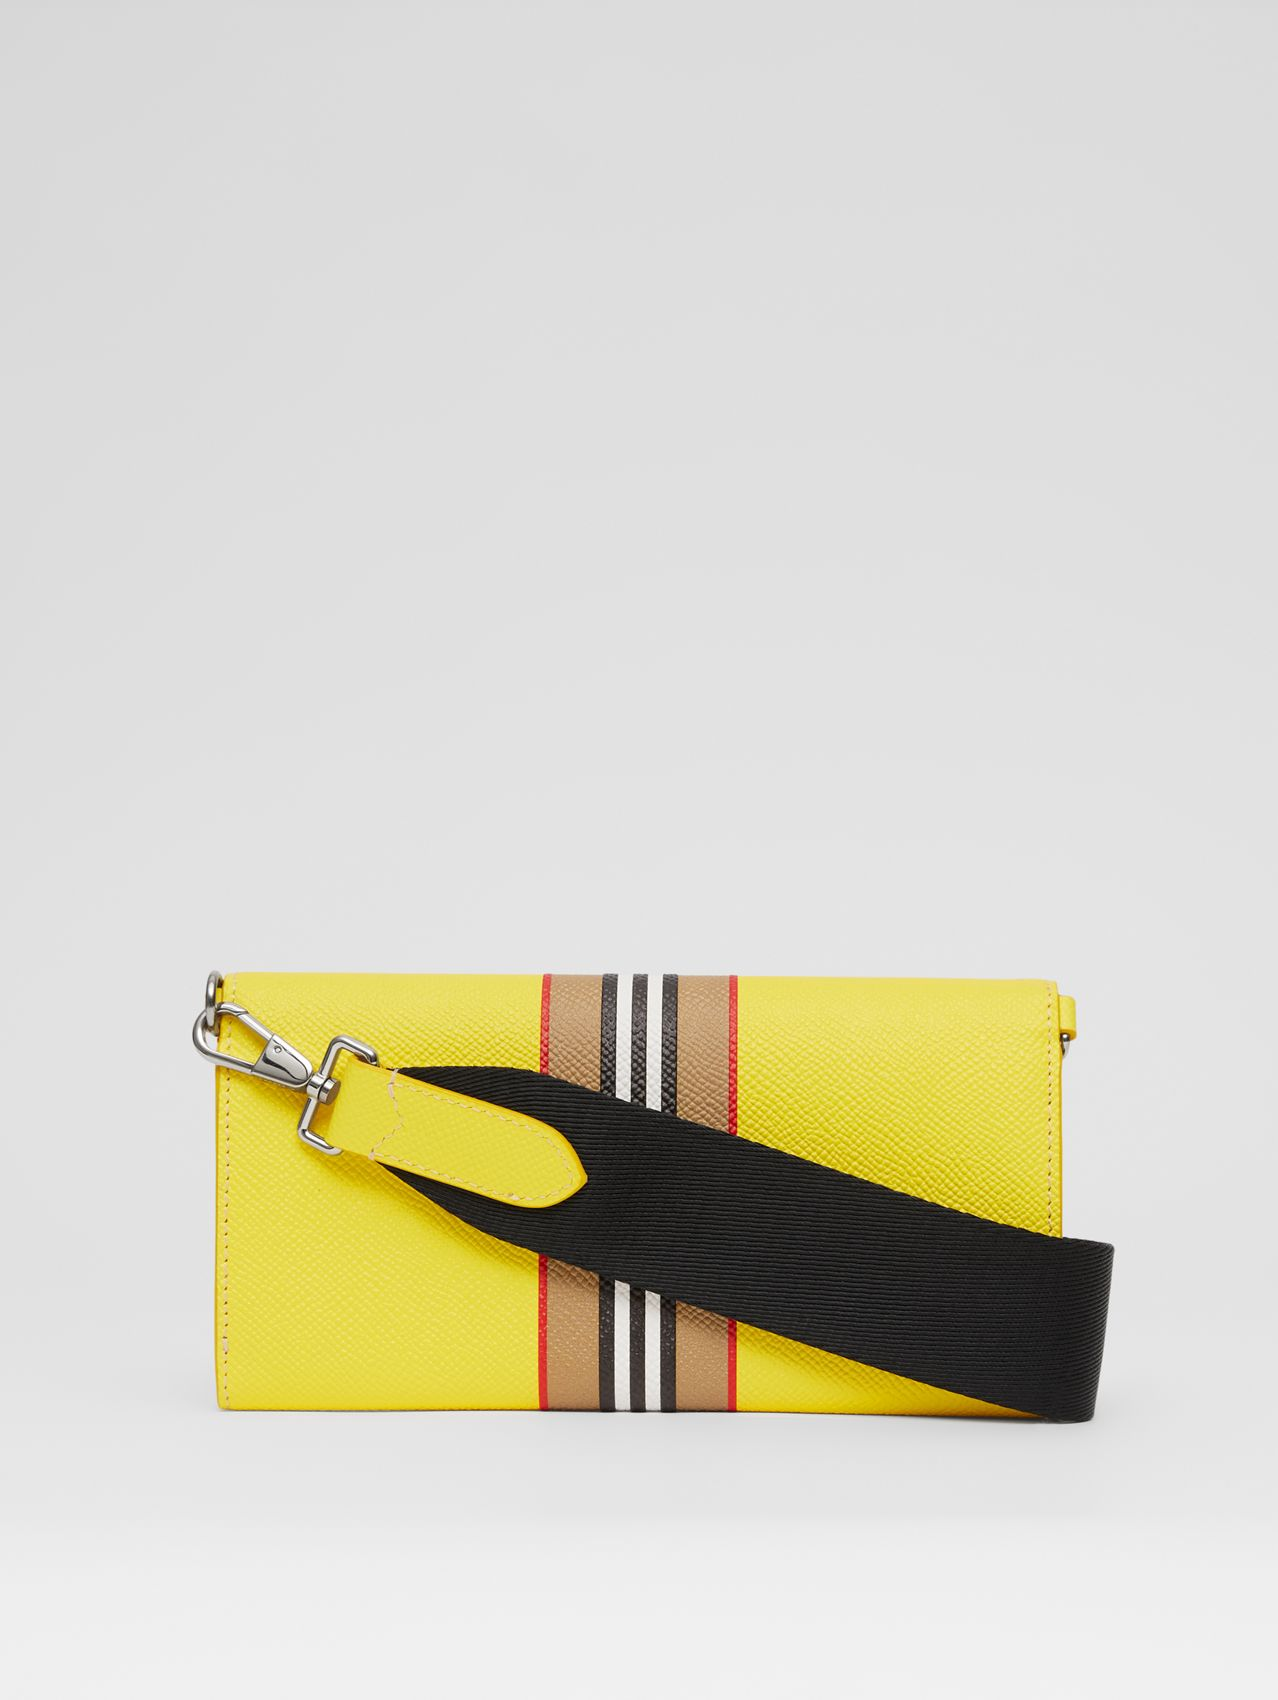 Logo Print Leather Wallet with Detachable Strap in Marigold Yellow